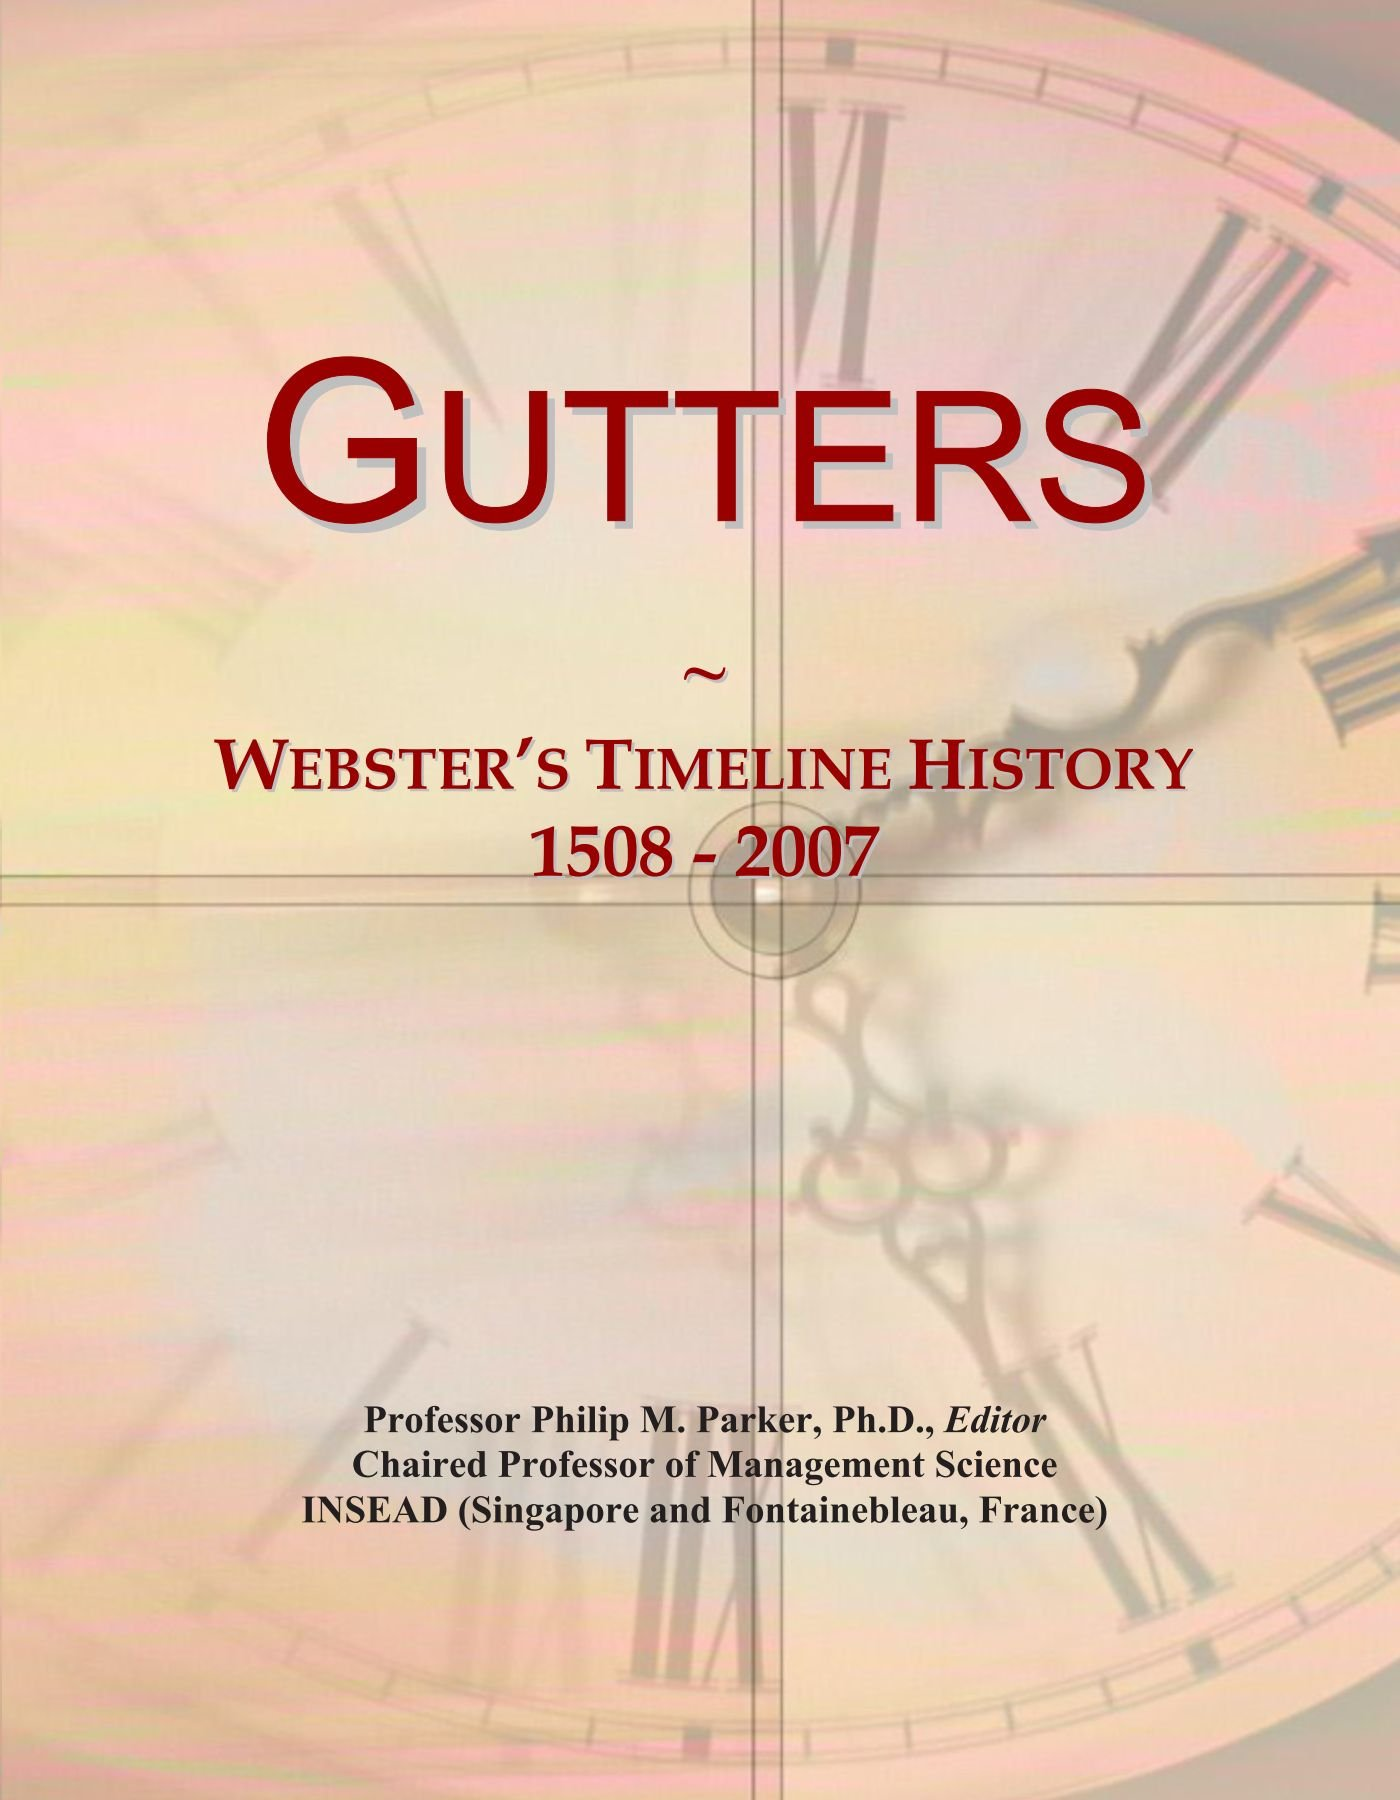 Gutters Websters Timeline History 1508 2007 Icon Group